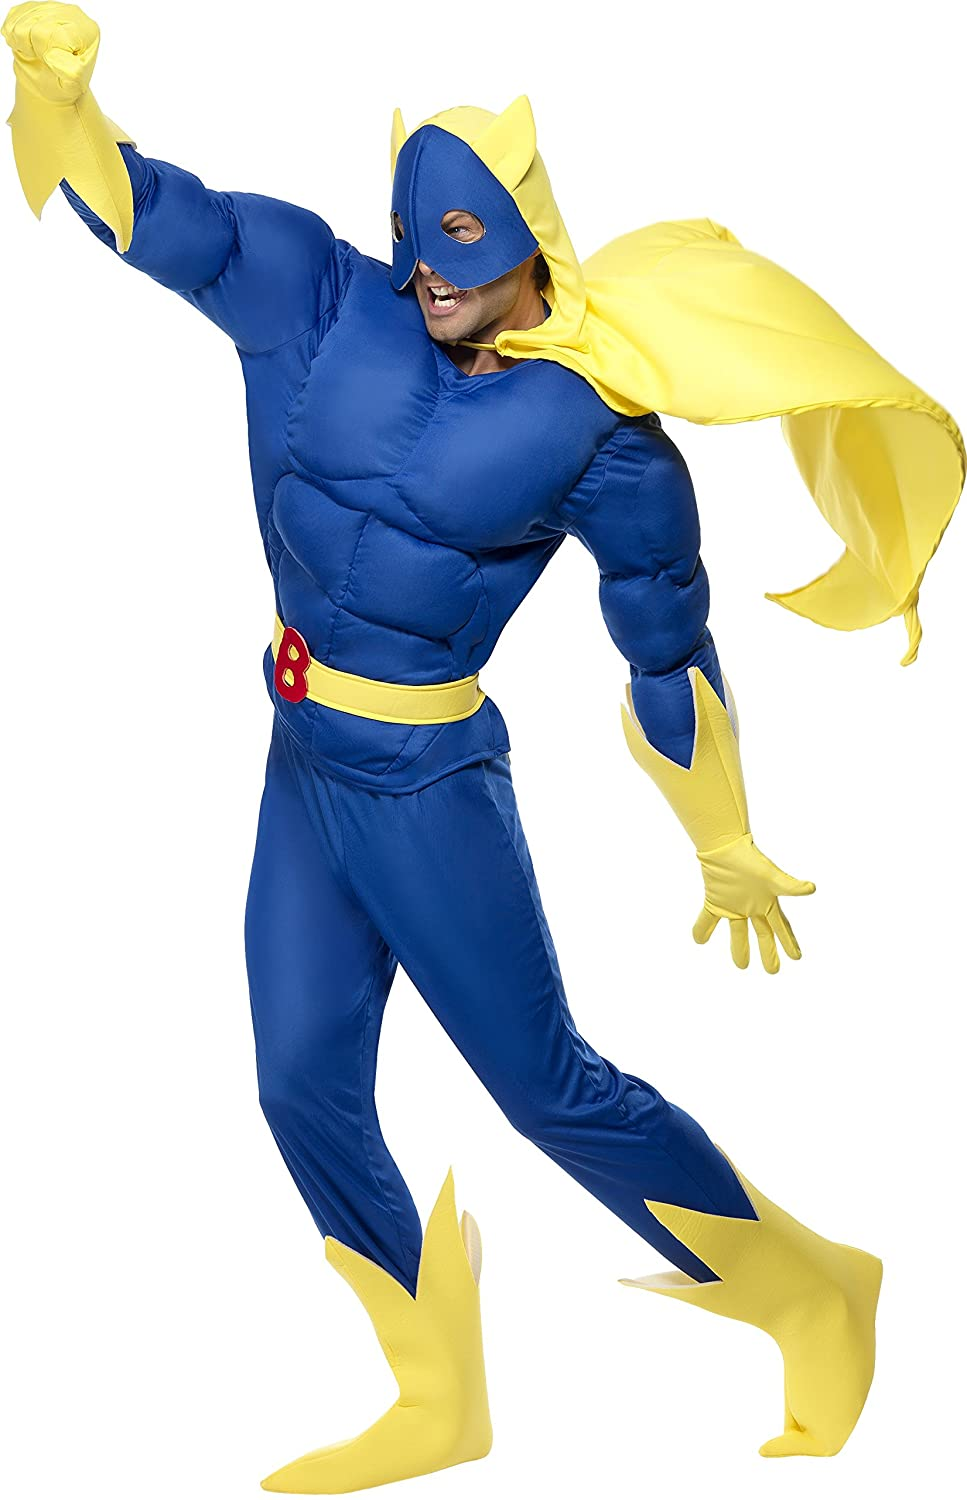 Bananaman 1980s Cartoon Superhero Costume for Men - Do you remember watching the cartoons?